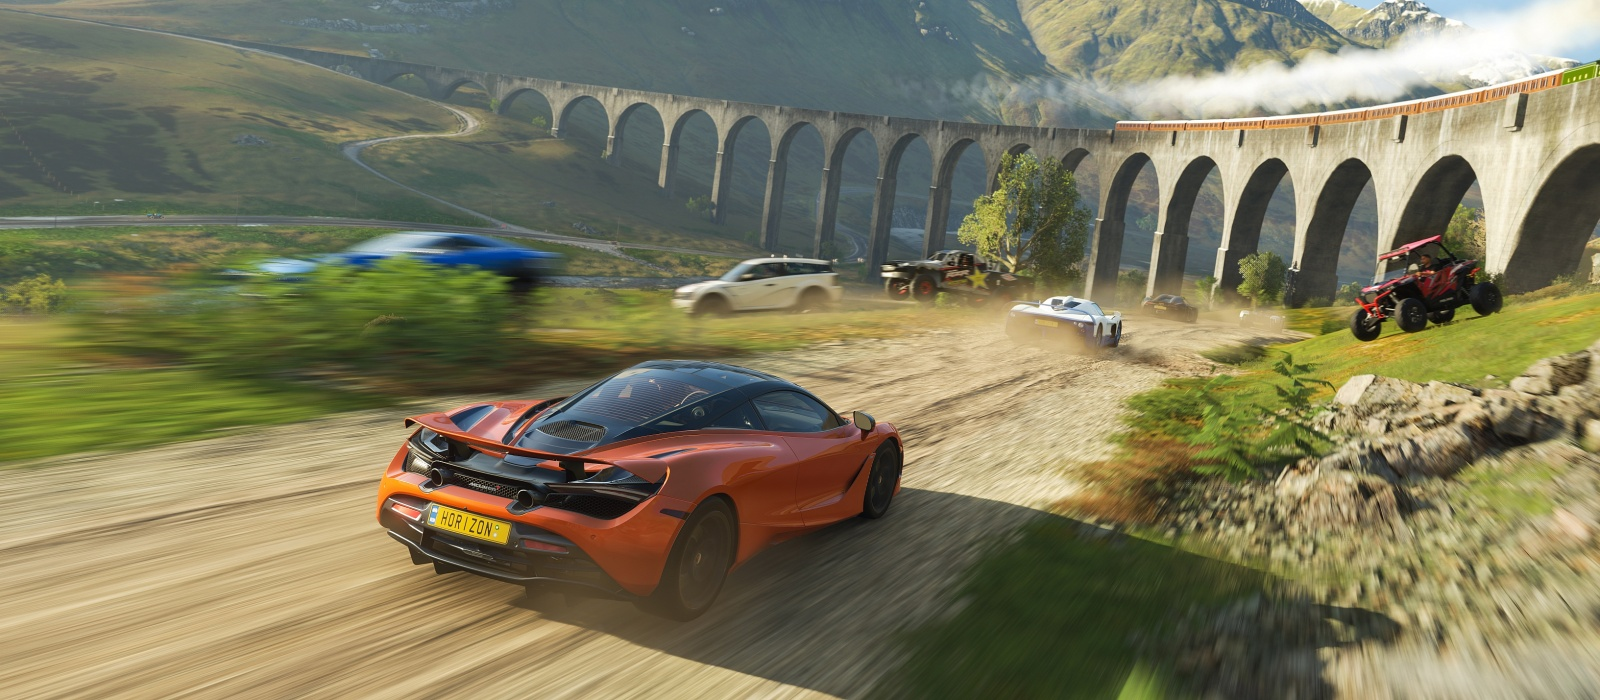 Map of all rarities in Forza Horizon 4. Where are they and how to find all rarities